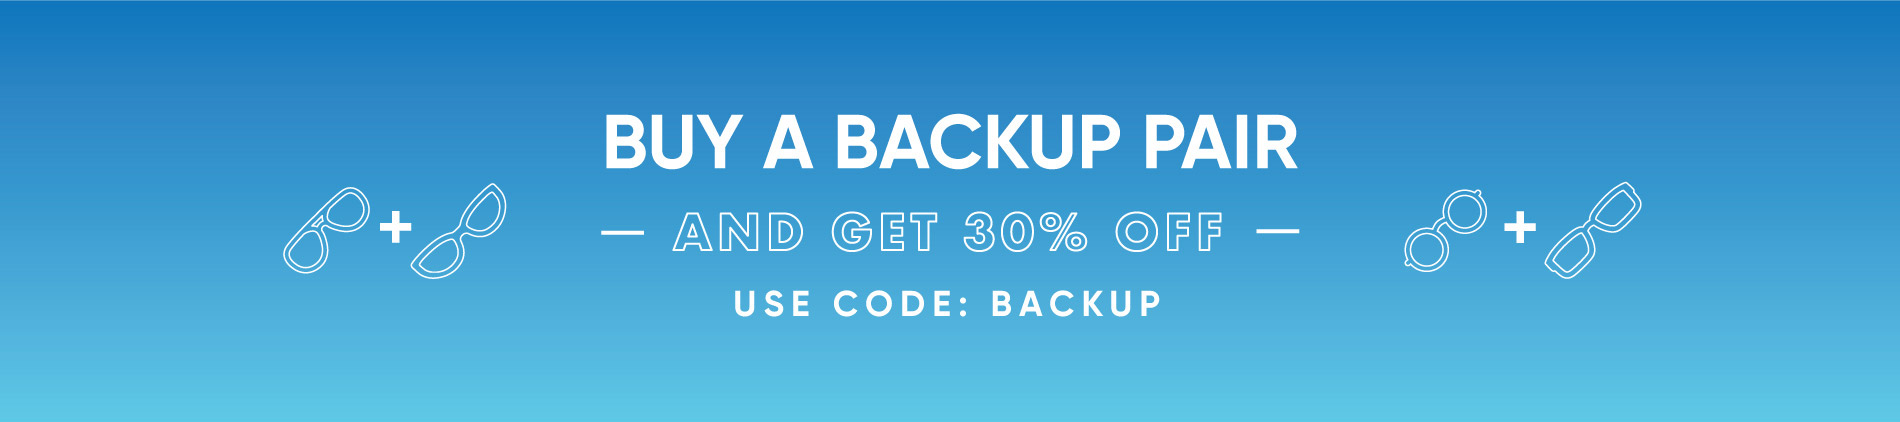 Save 30% off Backup Pair